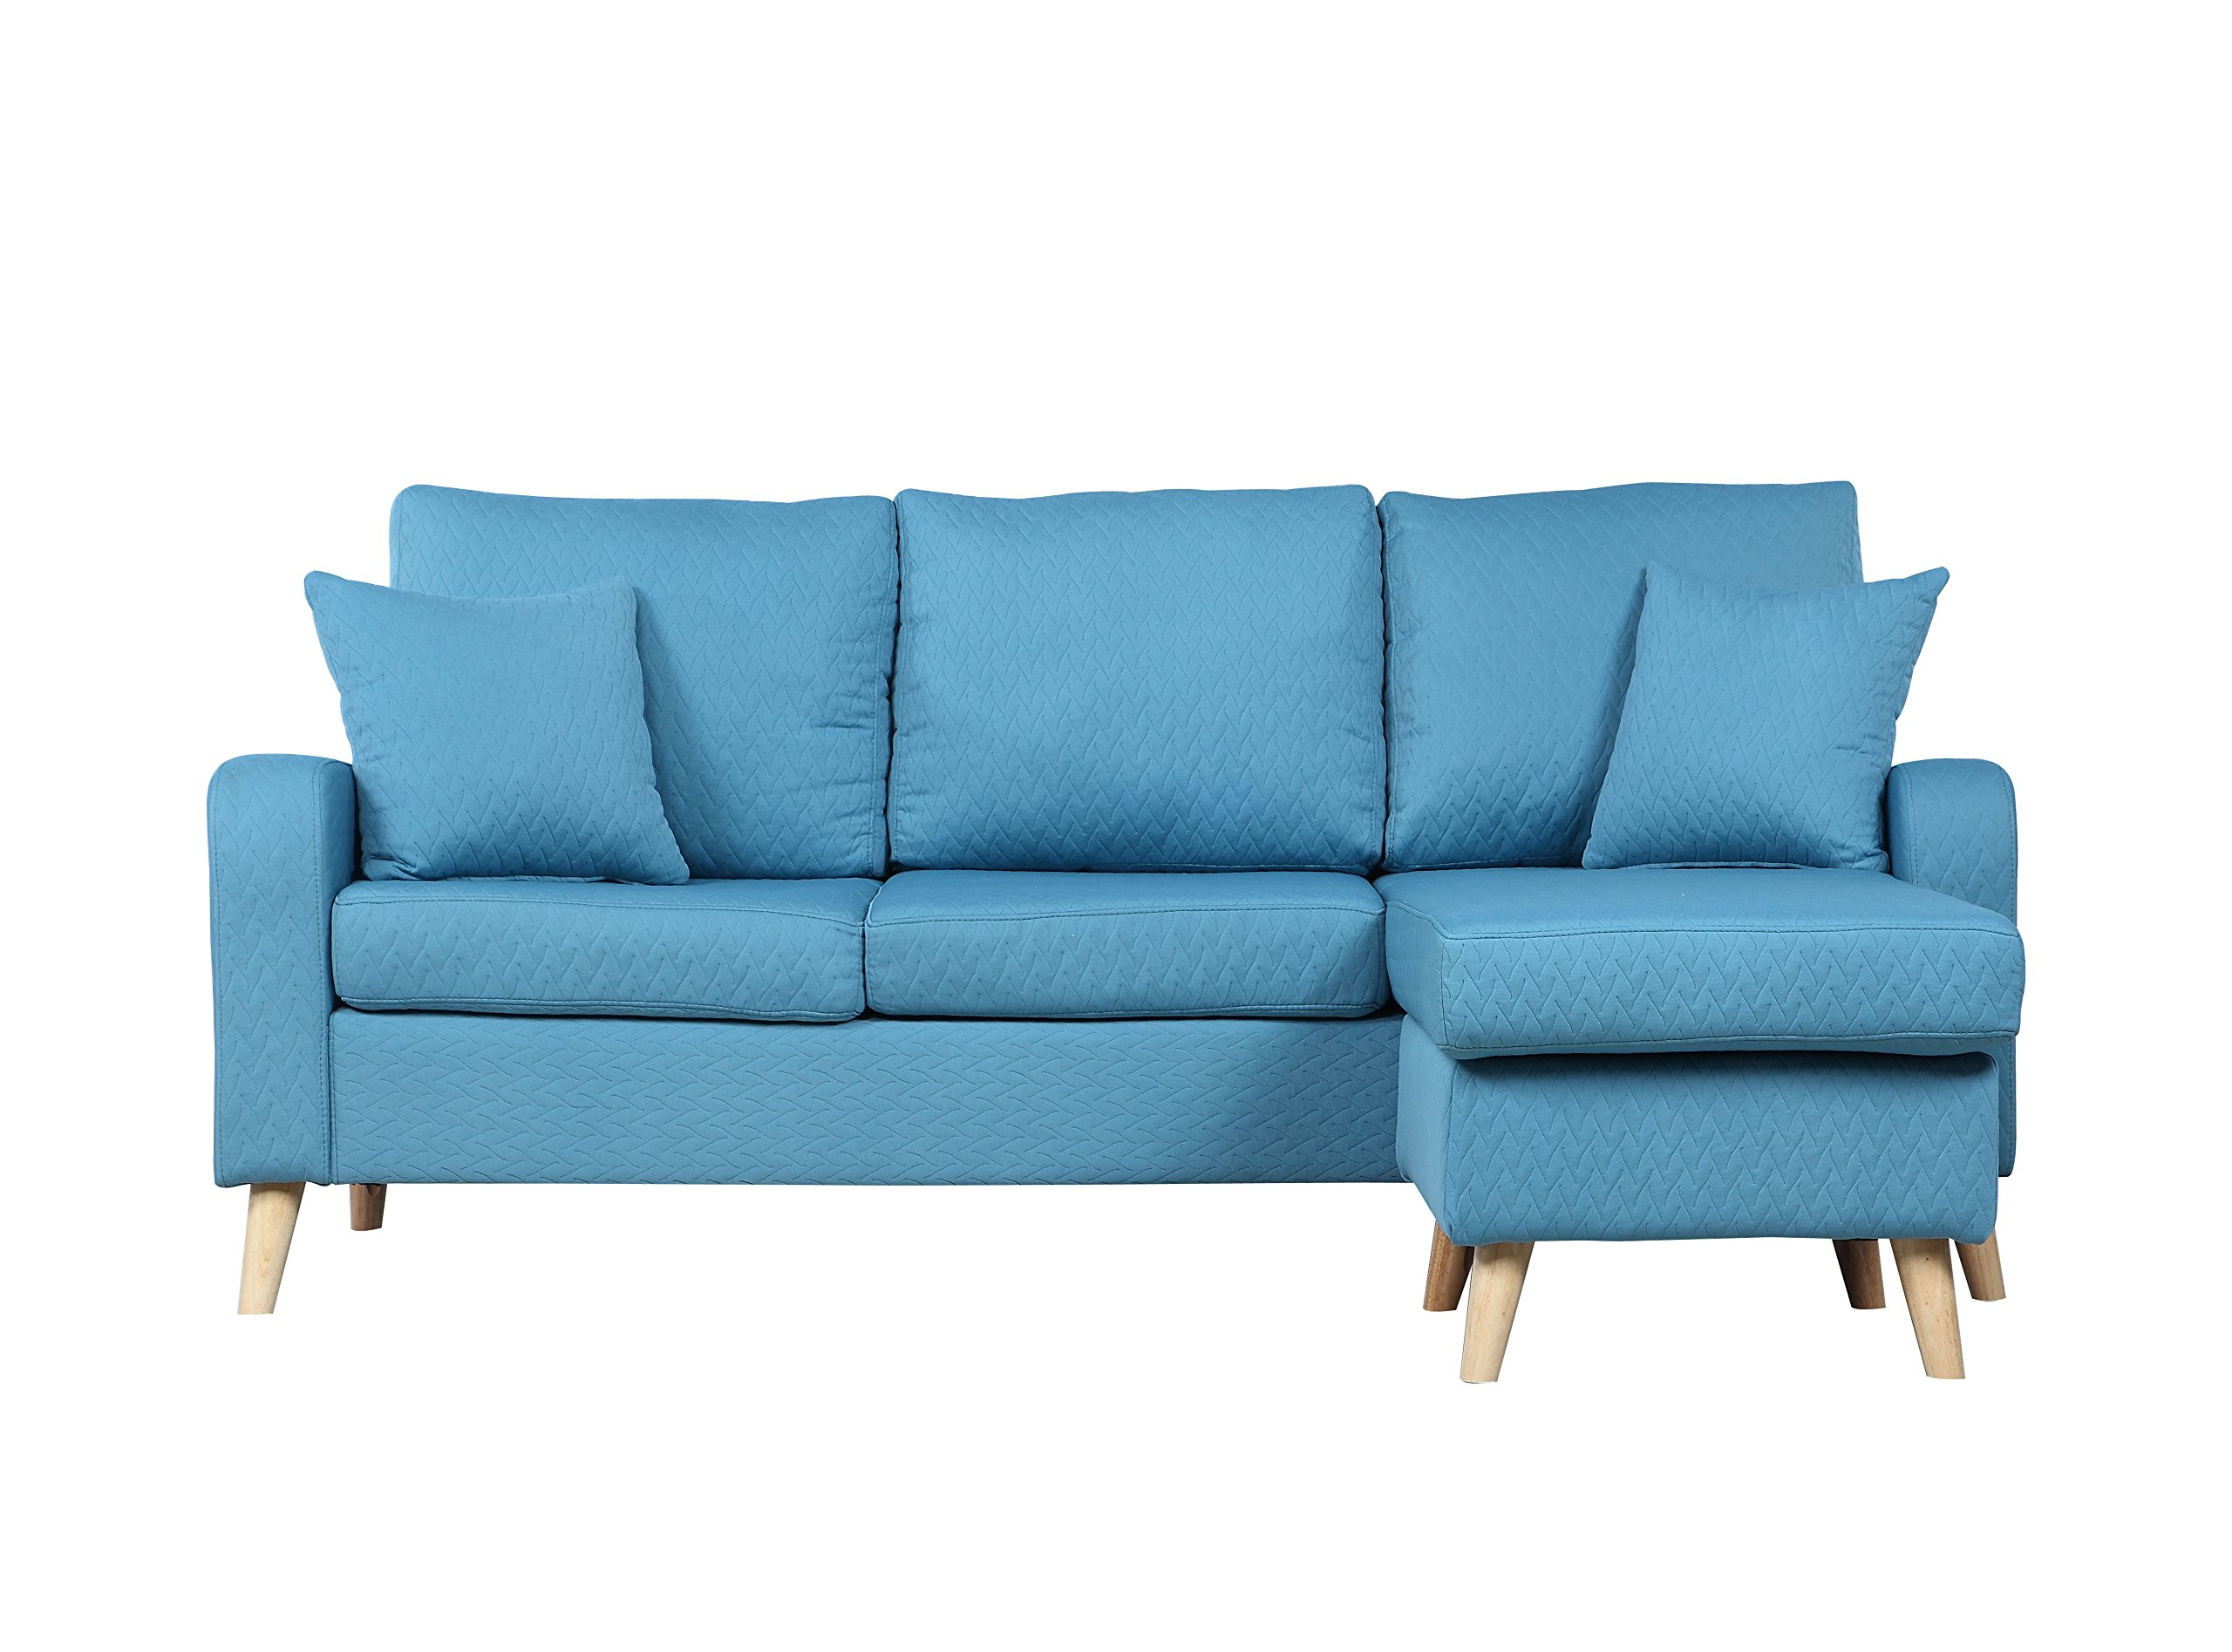 Divano Roma Furniture Middle Century Modern Linen Fabric Small Space Sectional Sofa with Reversible Chaise (Sky Blue) - Mid-century modern linen fabric with quilted stitching sectional sofa with reversible chaise lounge in a variant of colors Features soft fabrics with quilted details in fun colors on hardwood frame, overstuffed cushions and two decorative pillows in the same fabric and stitching Small space configurable sectional, allowing to position chaise on either end - Perfect for small apartments of studios - sofas-couches, living-room-furniture, living-room - 81fEggs0ChL -